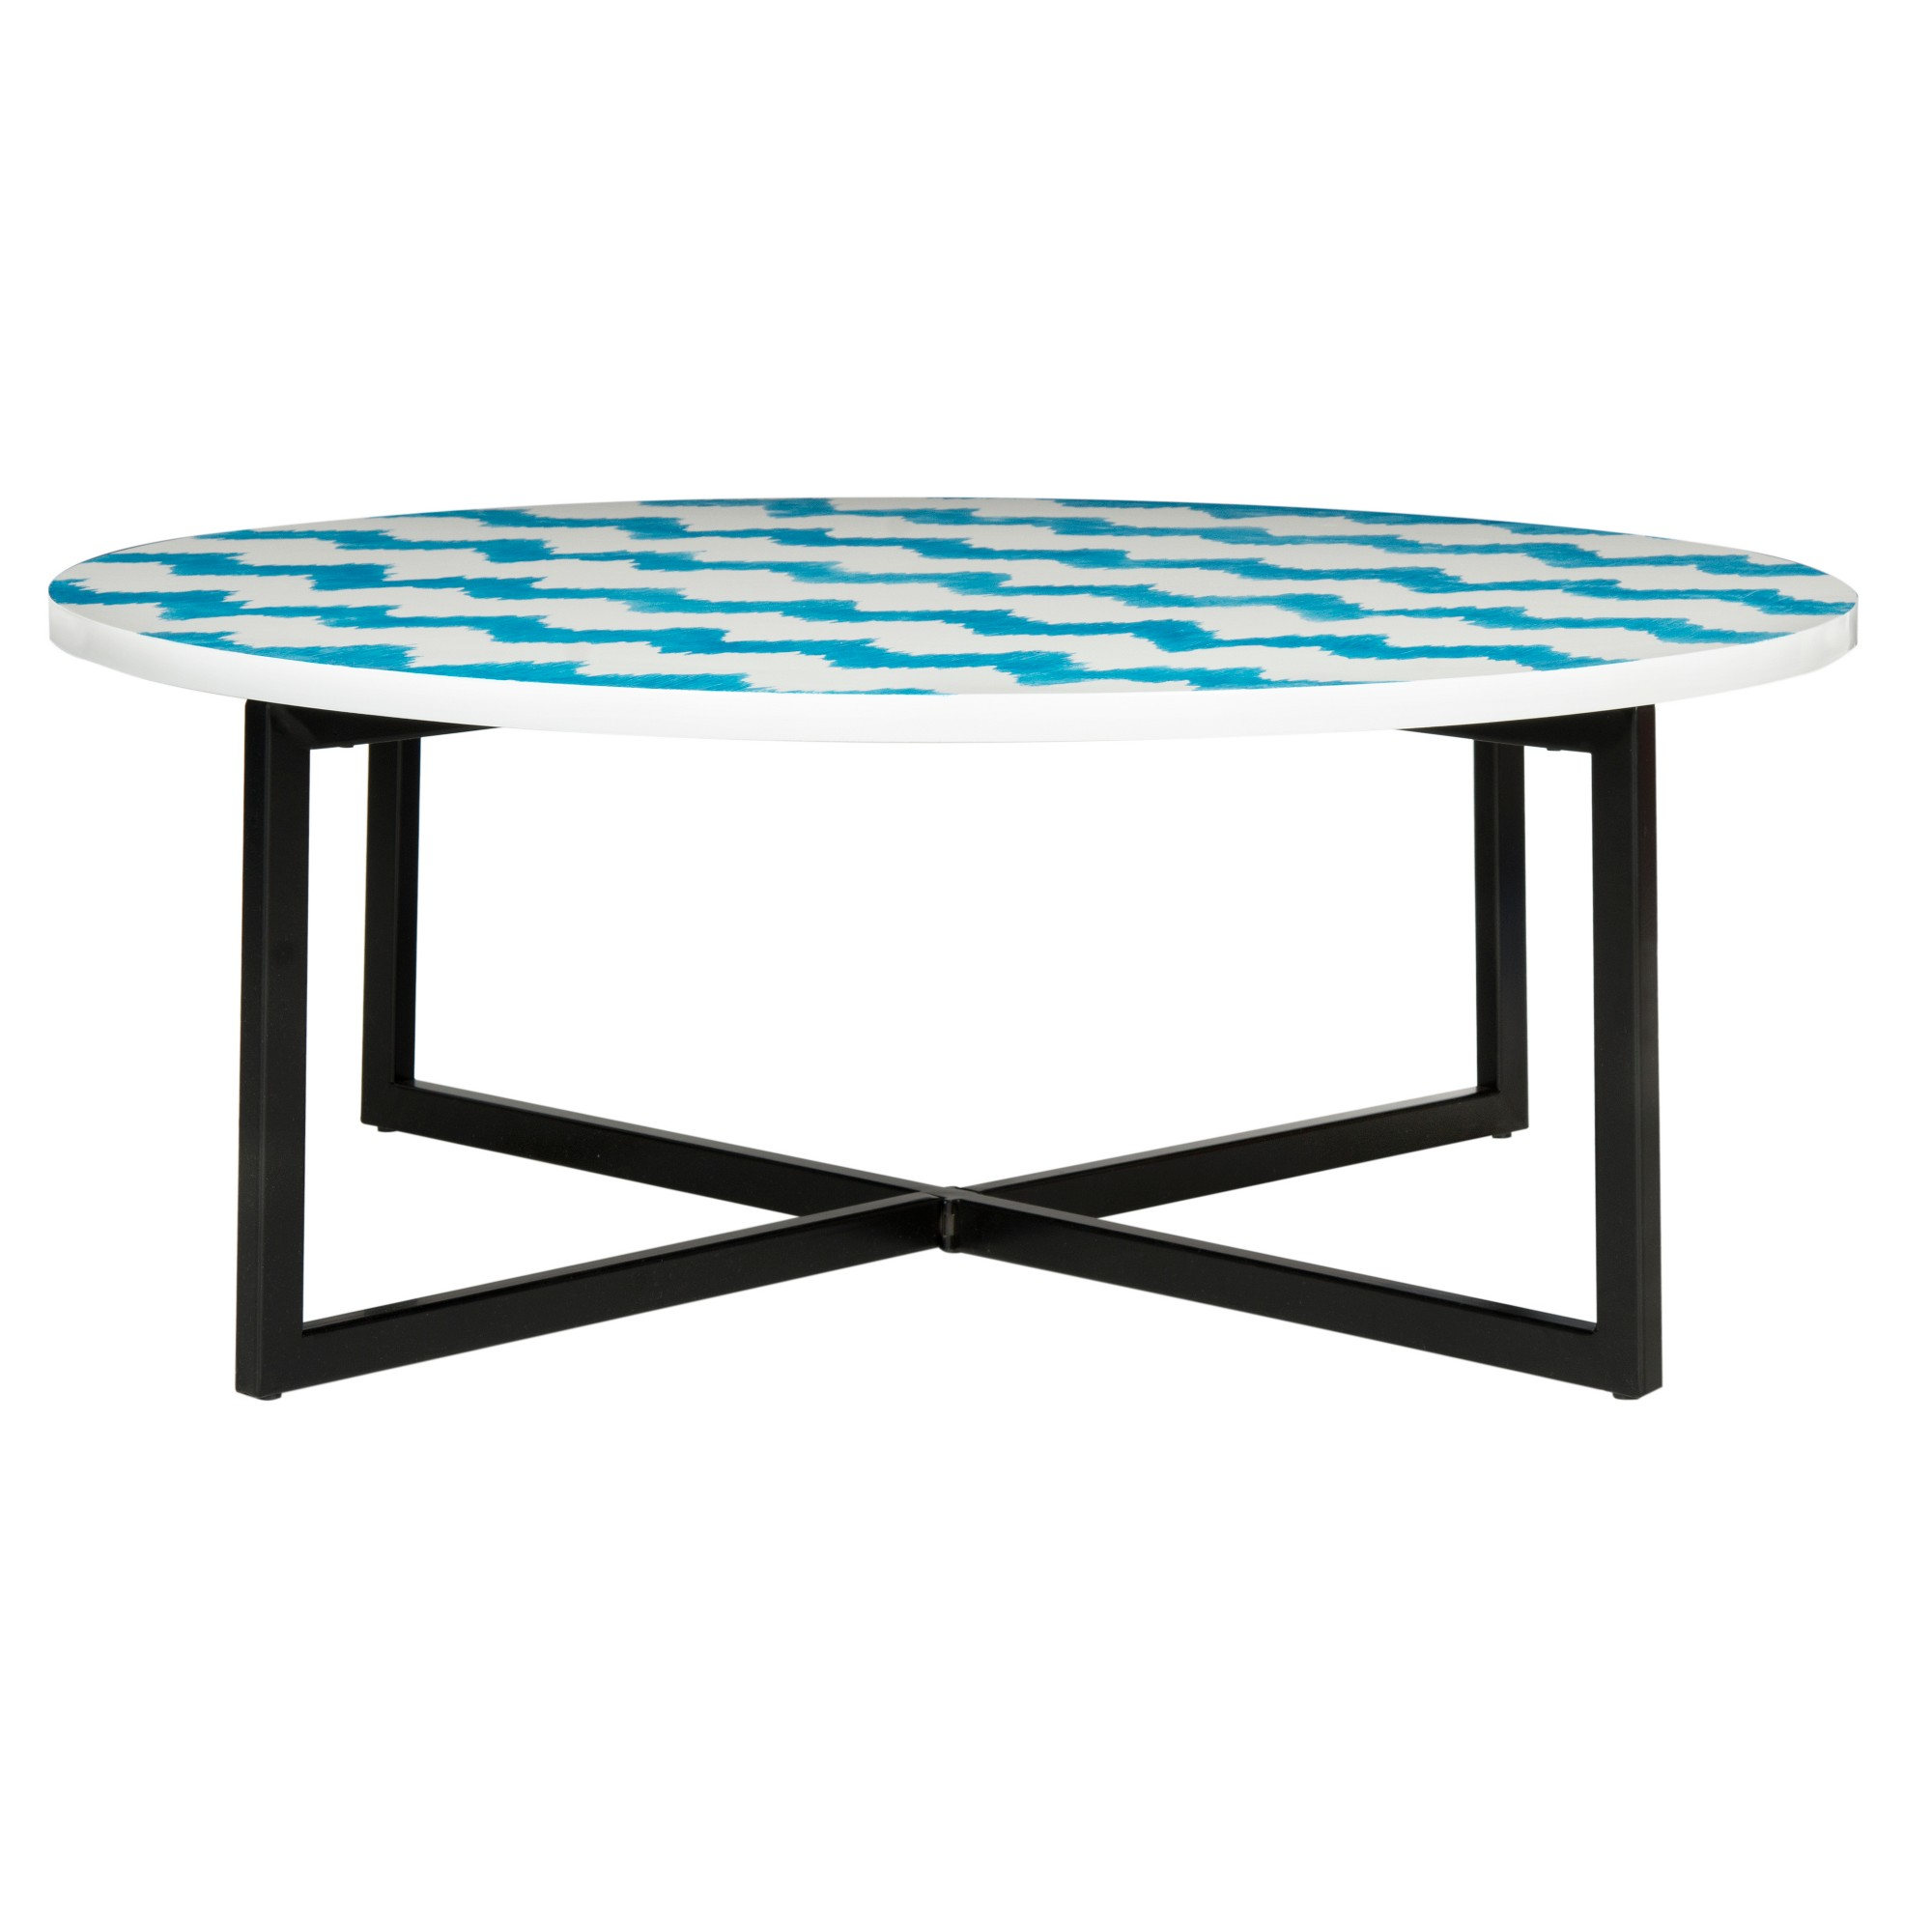 cheyenne coffee table blue white safavieh products black end tables target color and rustic country used lexington bedroom furniture ashley hours today are glass dining style row